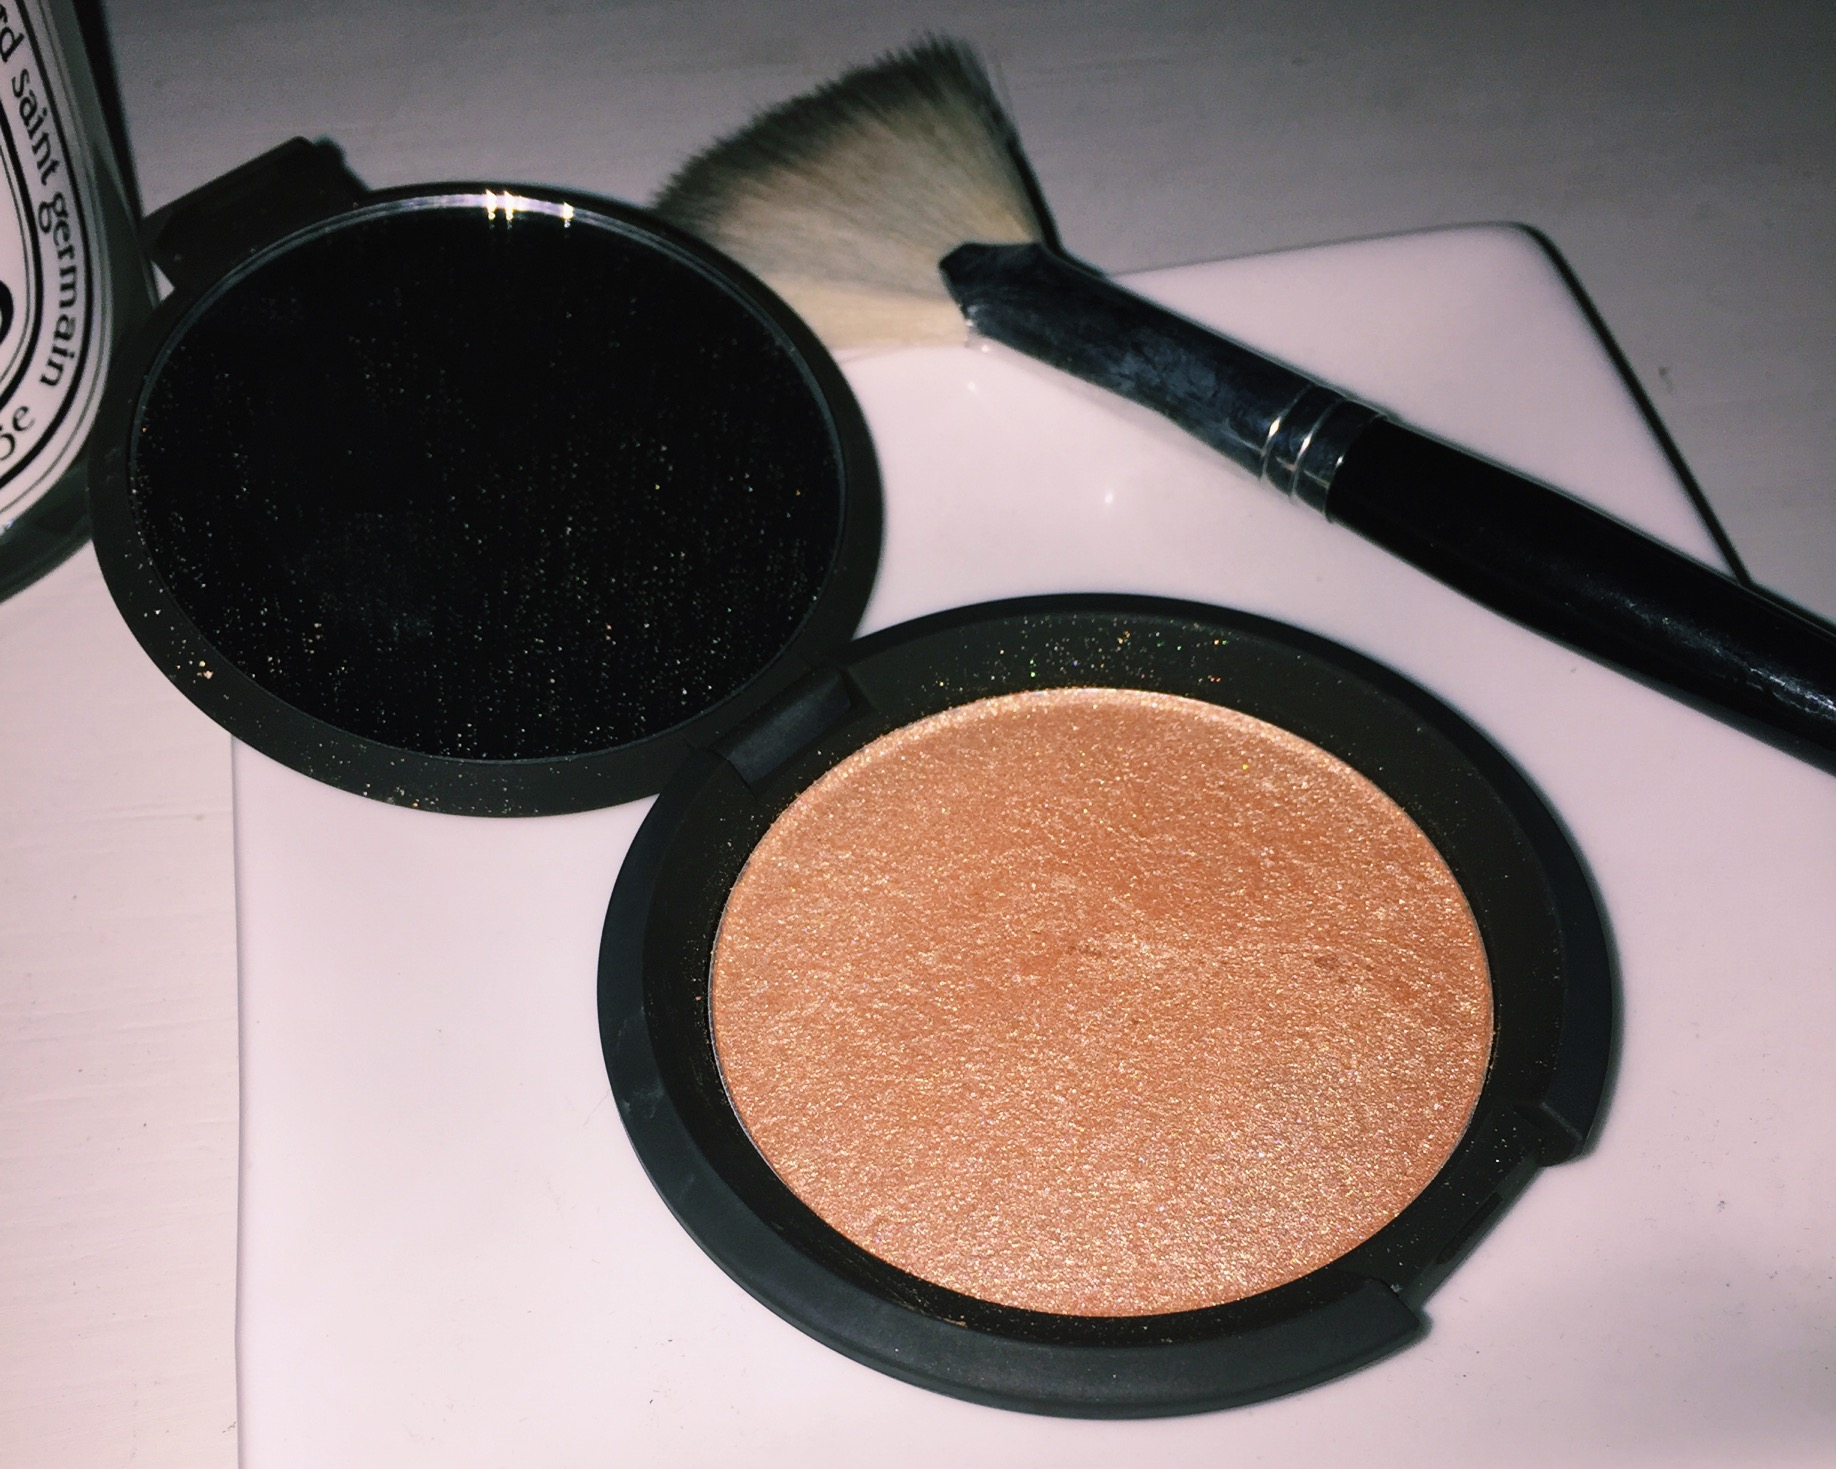 Becca & Jaclyn Hill Champagne Pop Highlighter!